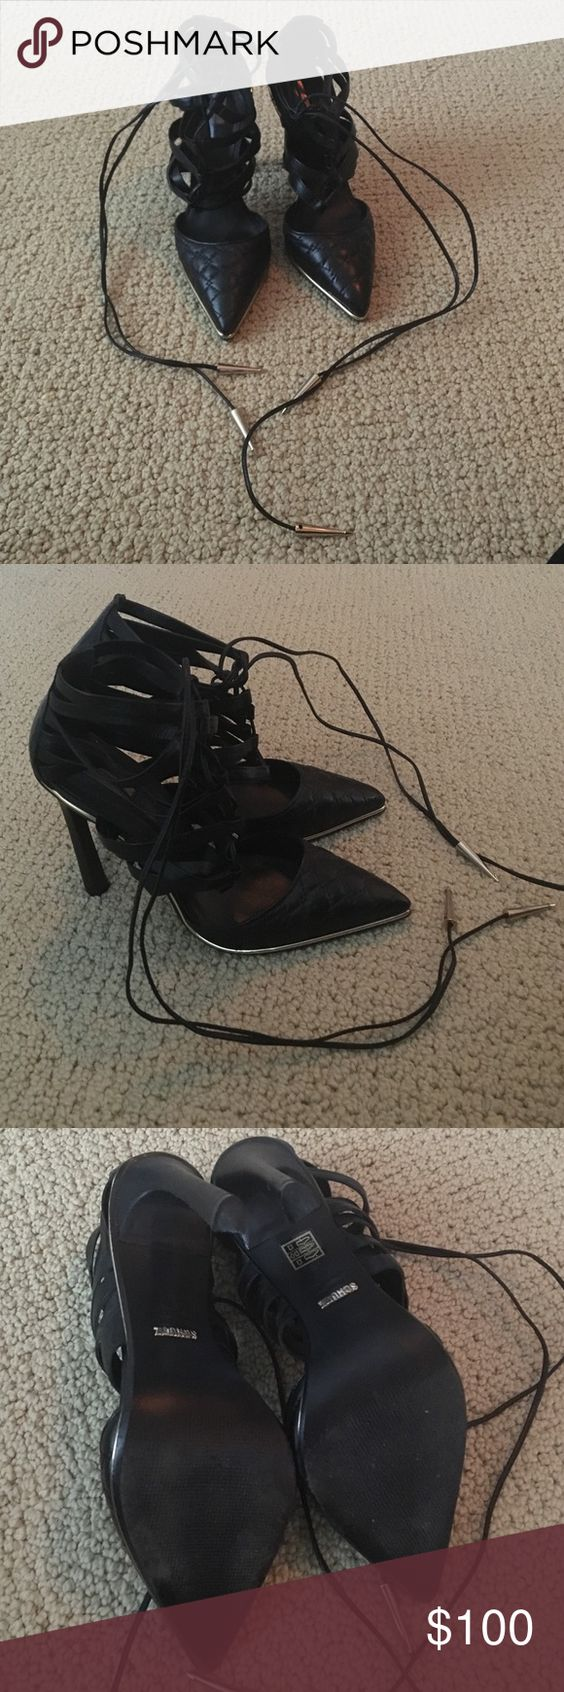 """Schutz black strappy leather lace up heels Beautiful black leather strappy lace up sandals by Schutz. Quilted at the toes. 4"""" heel, super sexy shoes. Worn only once just a little light wear on the bottom hardly noticeable. Fits size 7.5-8. SCHUTZ Shoes Heels"""